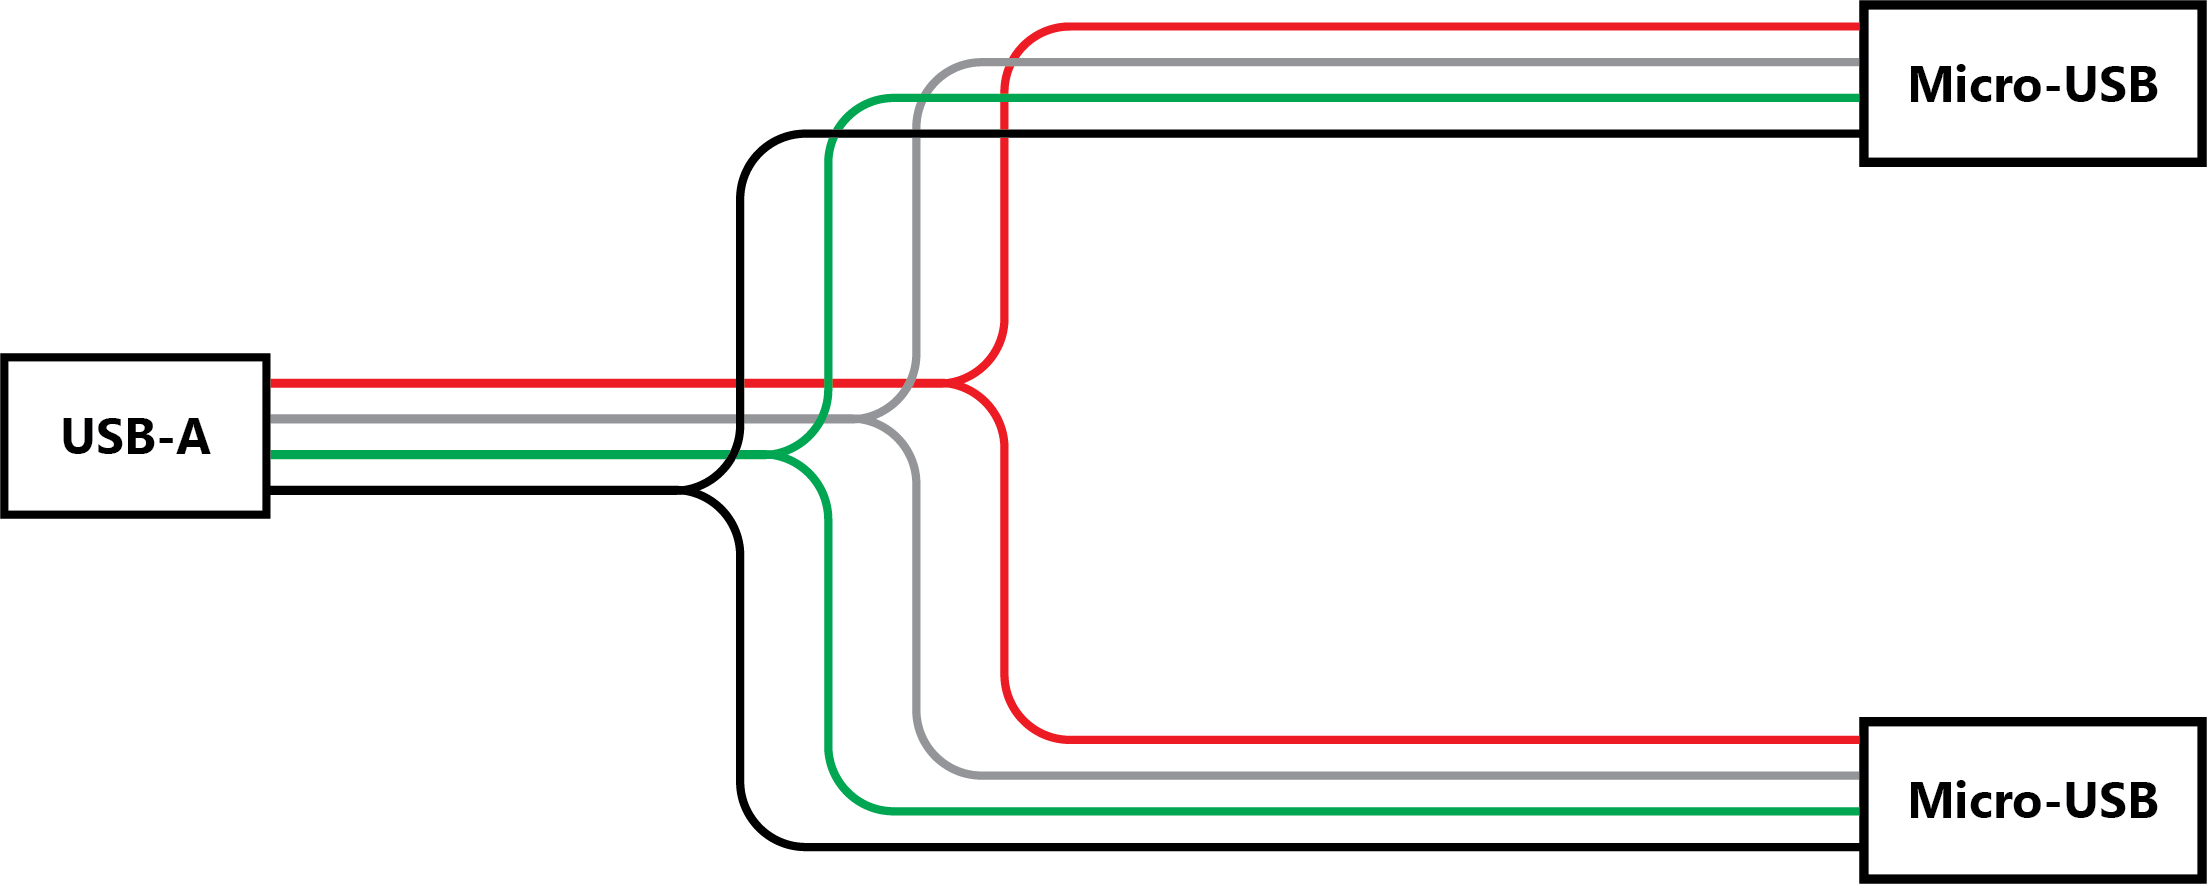 Wiring Diagram For Split Micro-Usb Cable? - Electrical Engineering - Usb To Aux Wiring Diagram